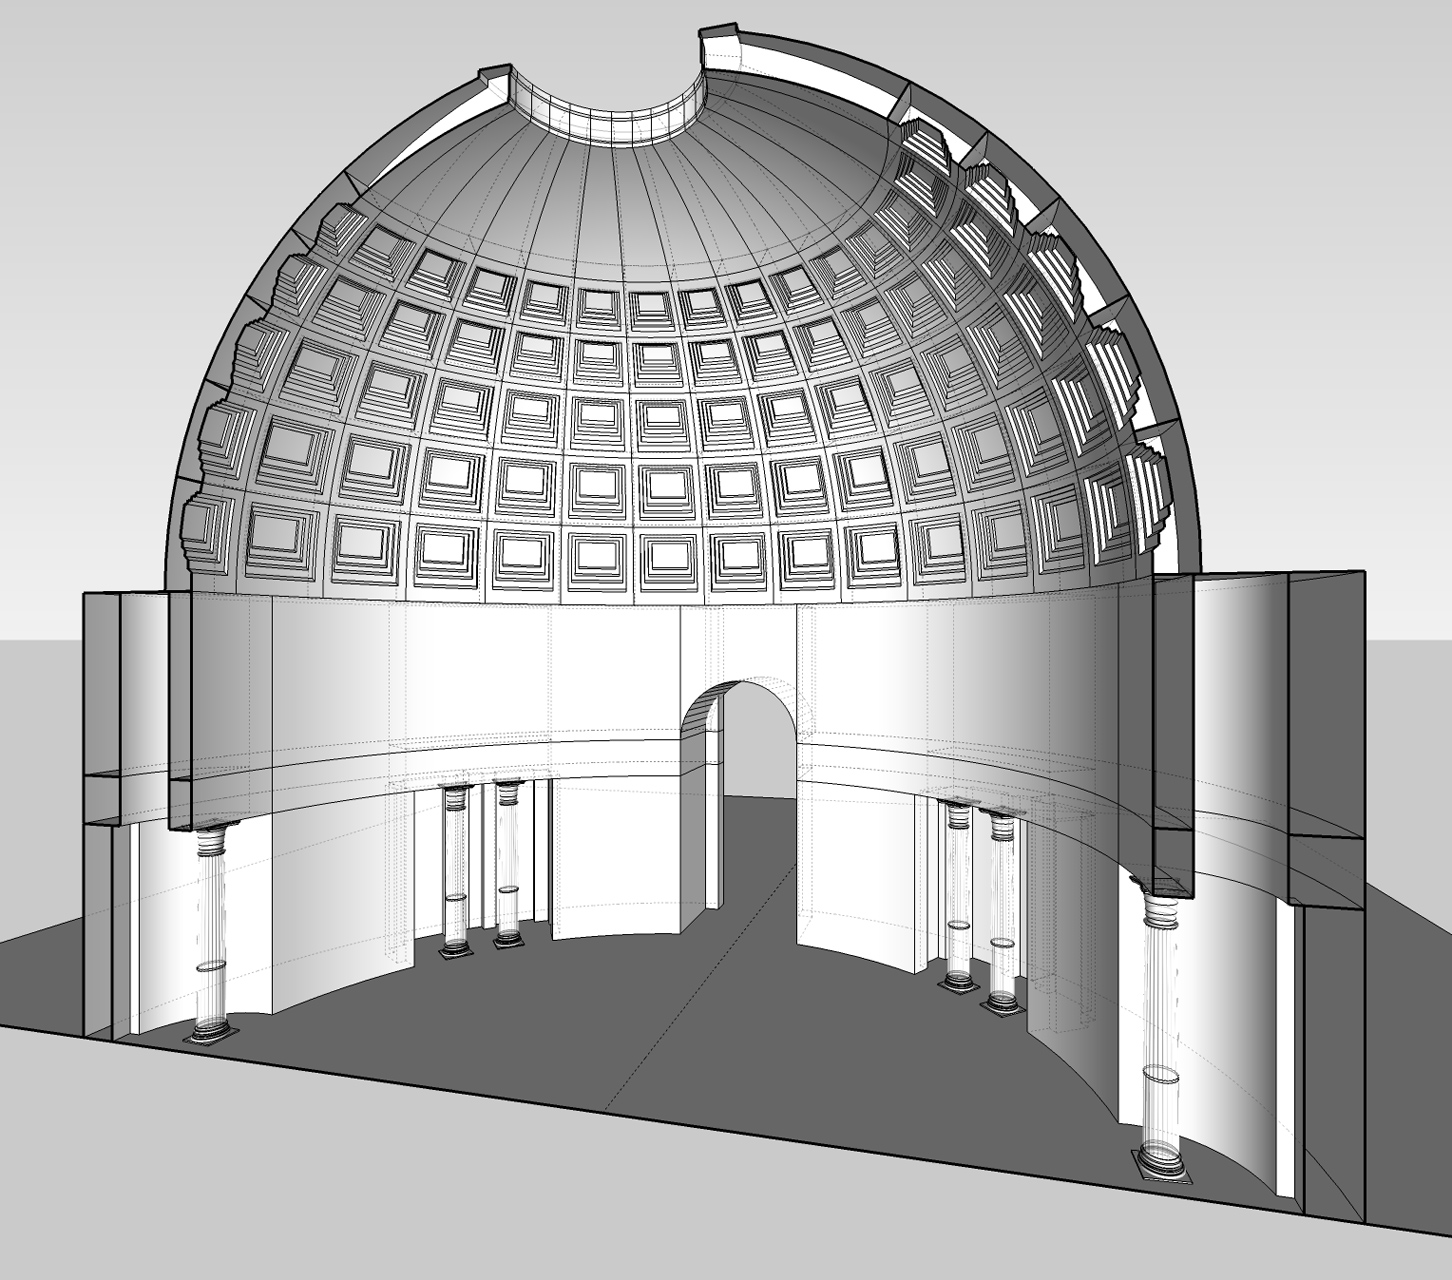 I used SketchUp to model the general scene